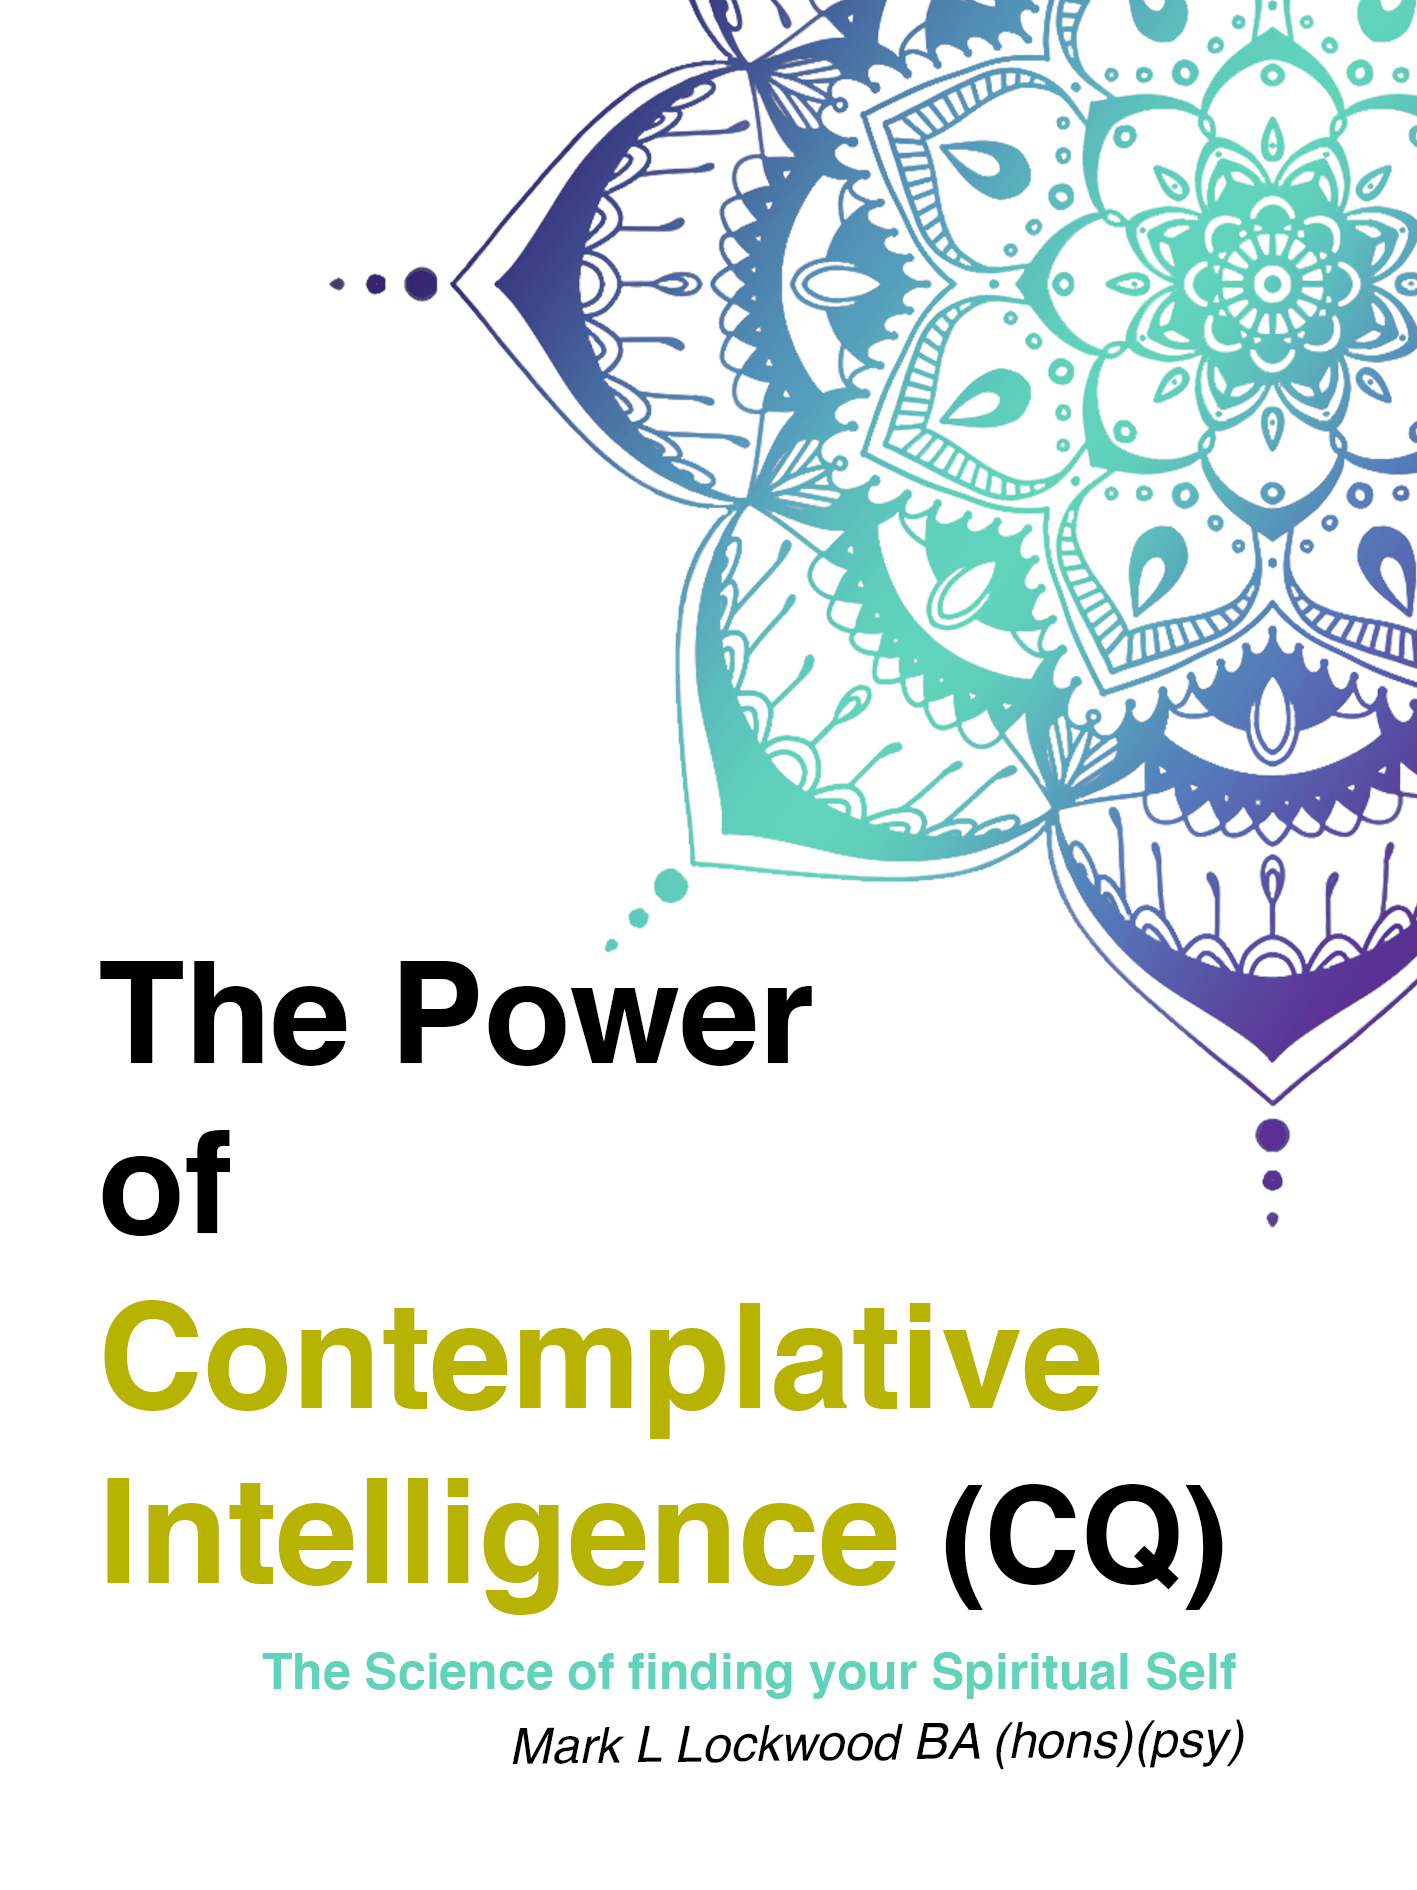 Why CQ is more important than EQ and IQ